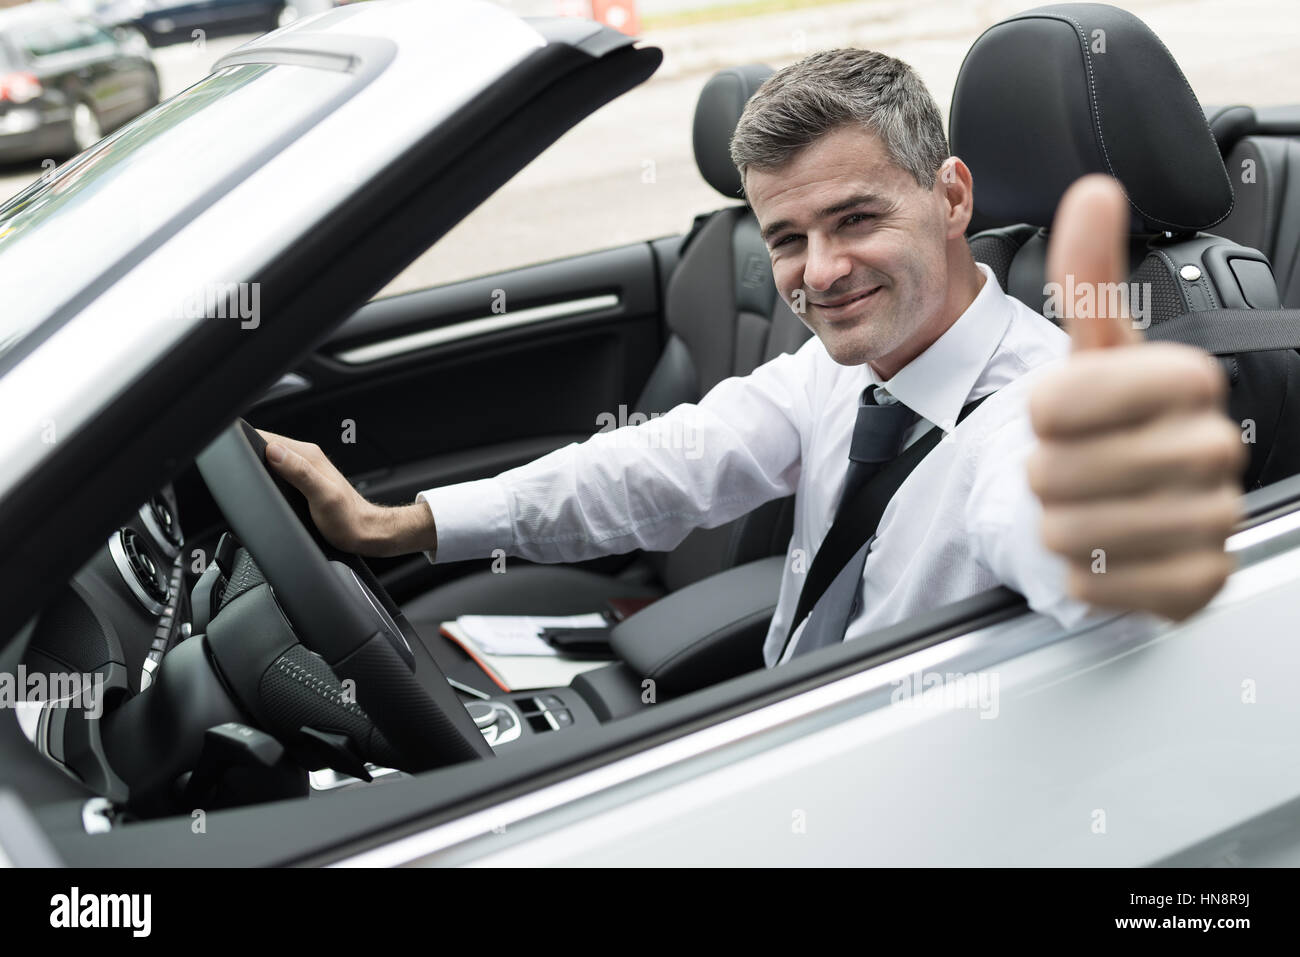 Smiling successful man driving his new expensive car and giving a thumbs up - Stock Image